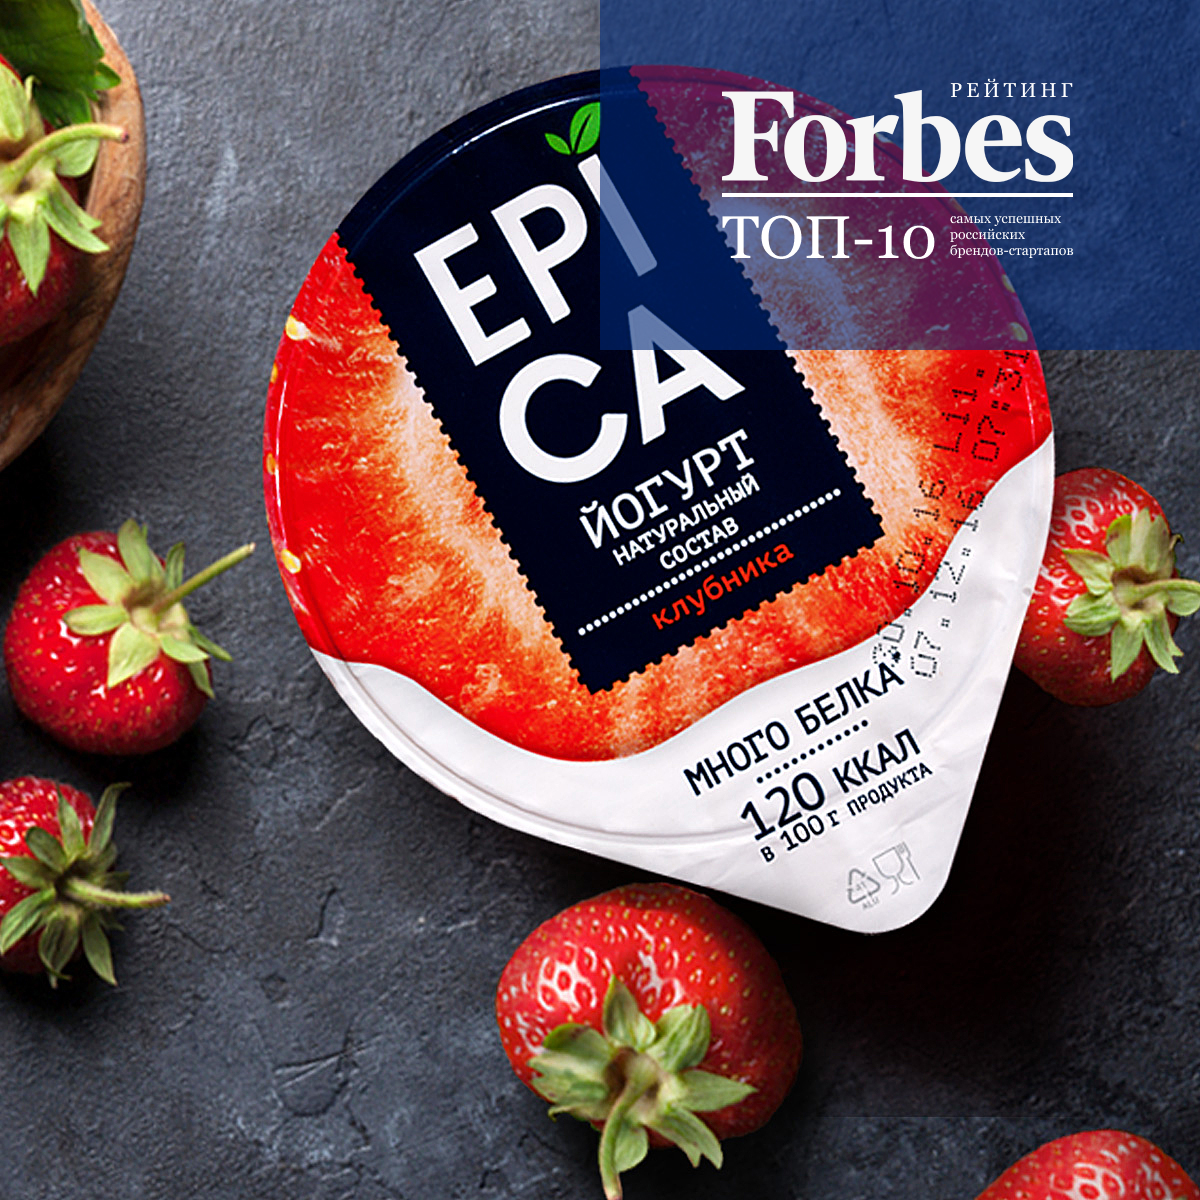 epica-forbes